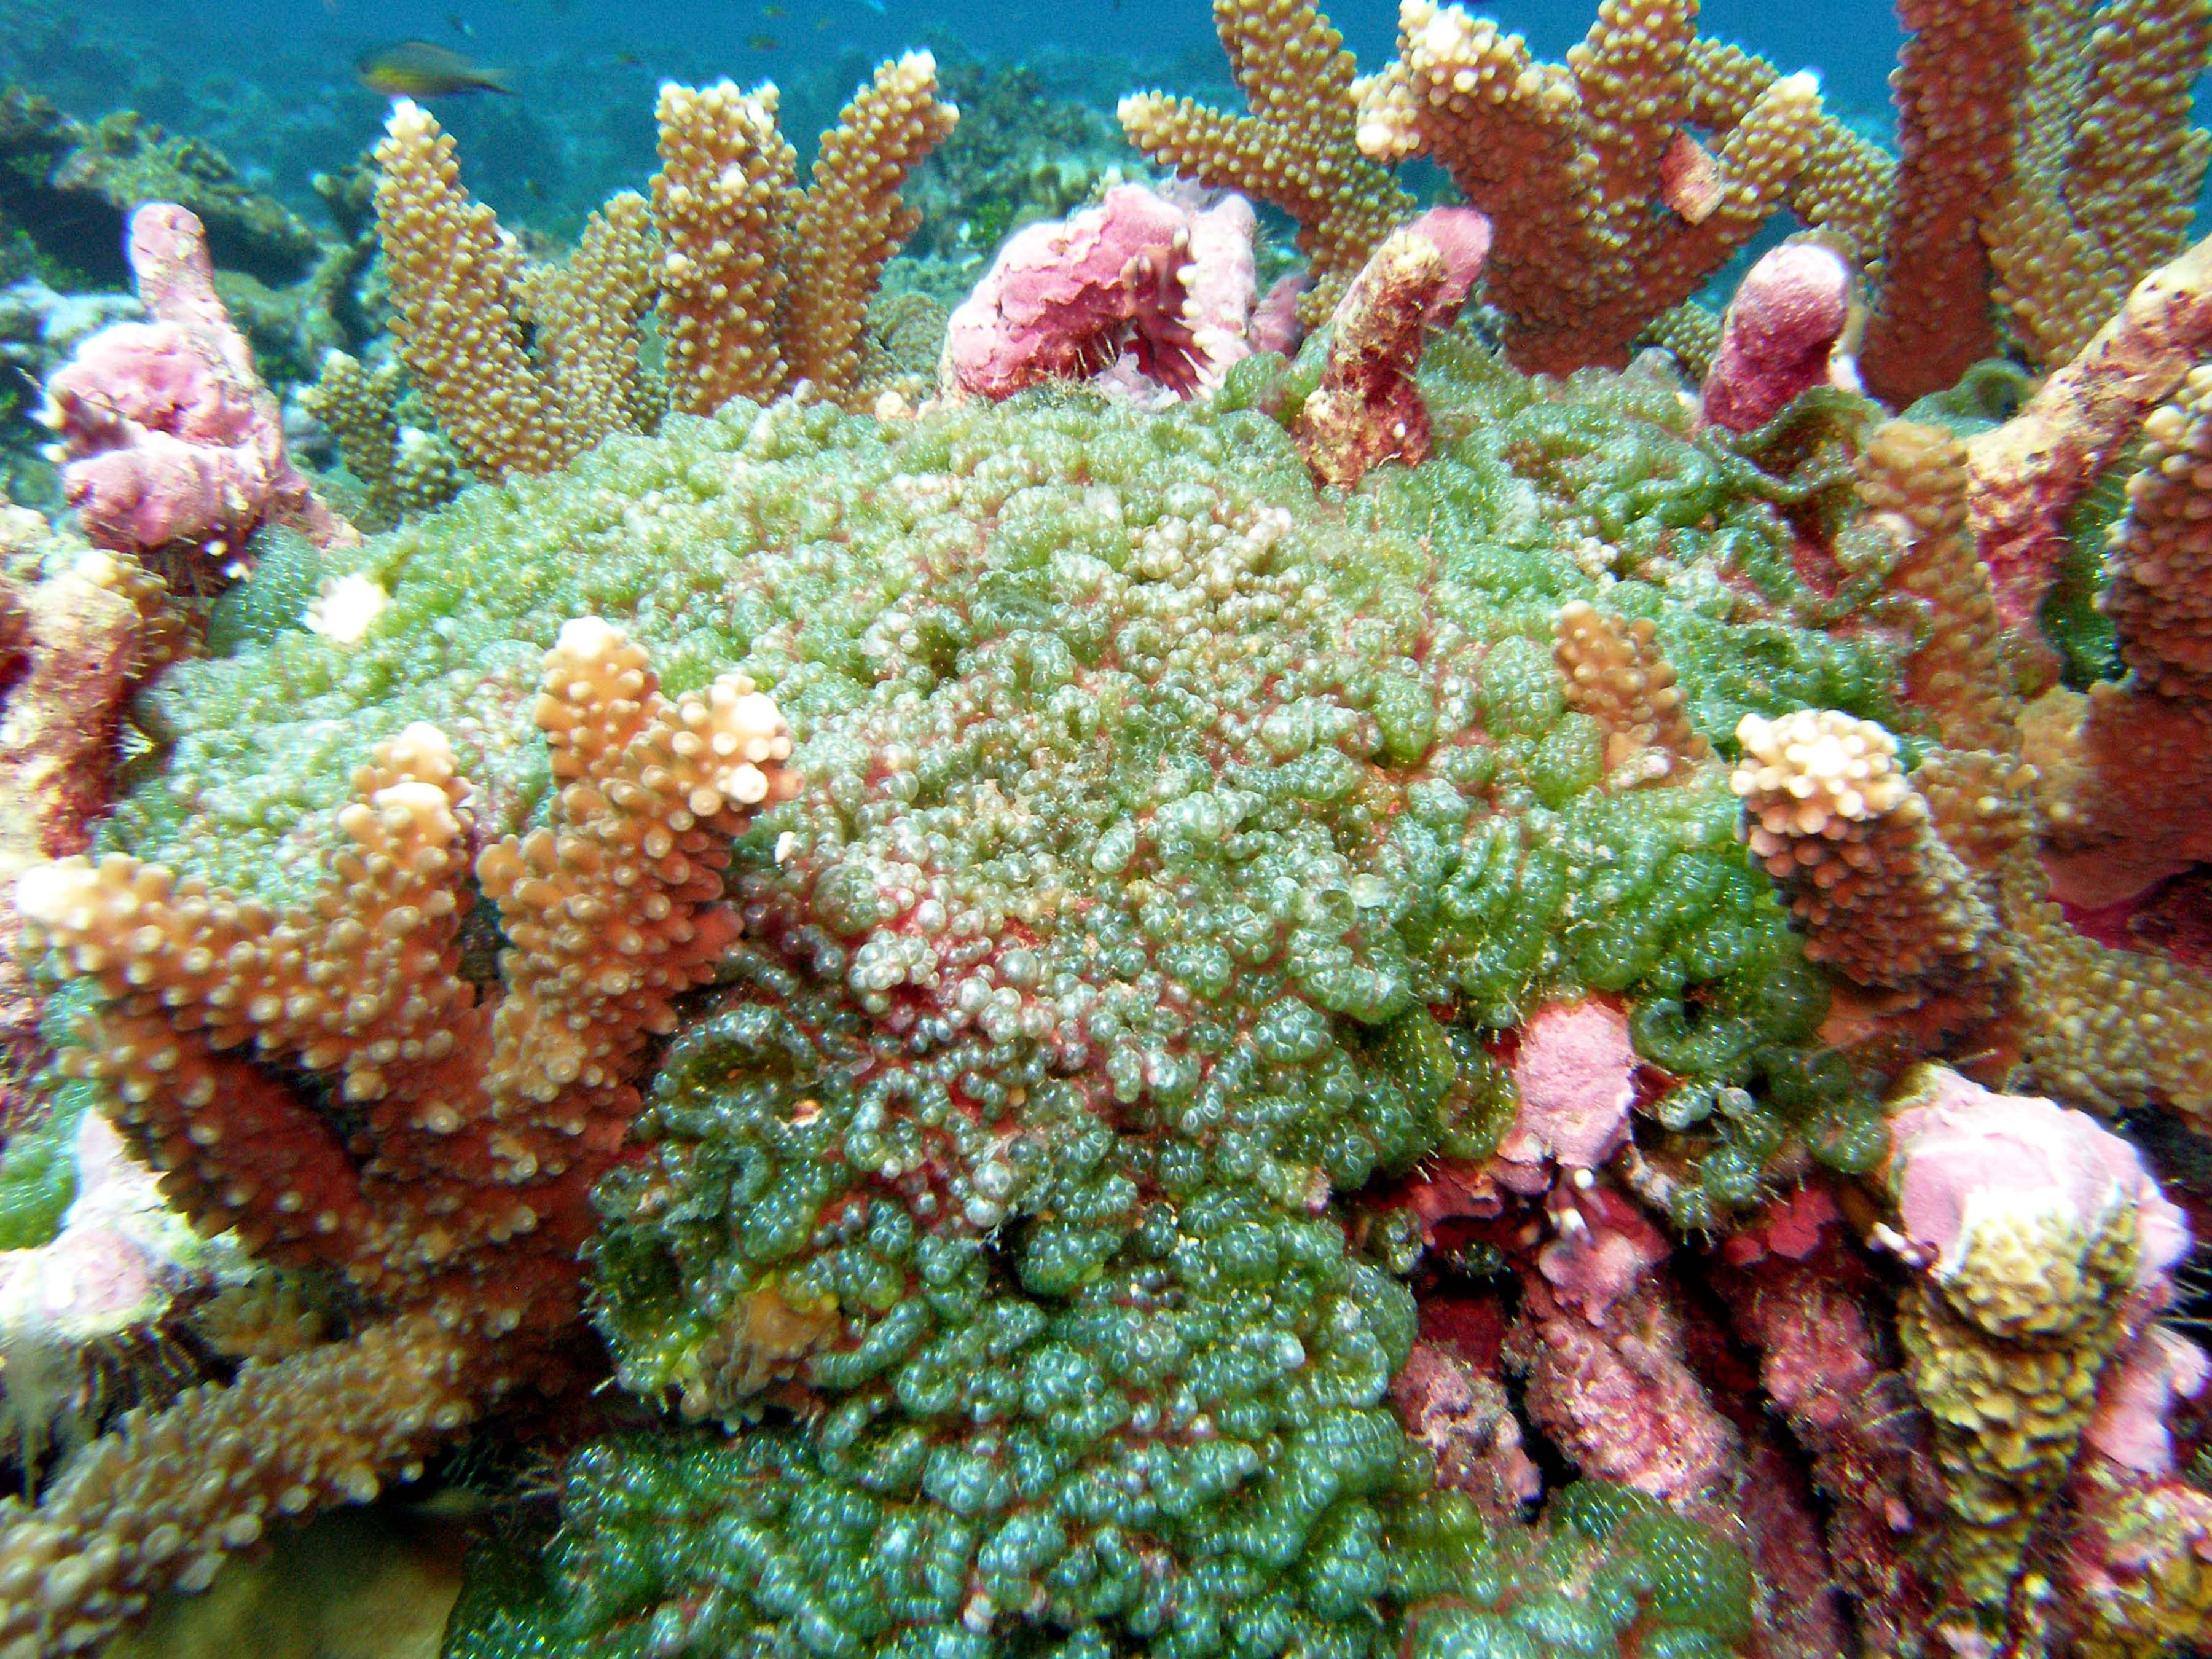 Fleshy algae may soon smother this otherwise healthy coral reef.